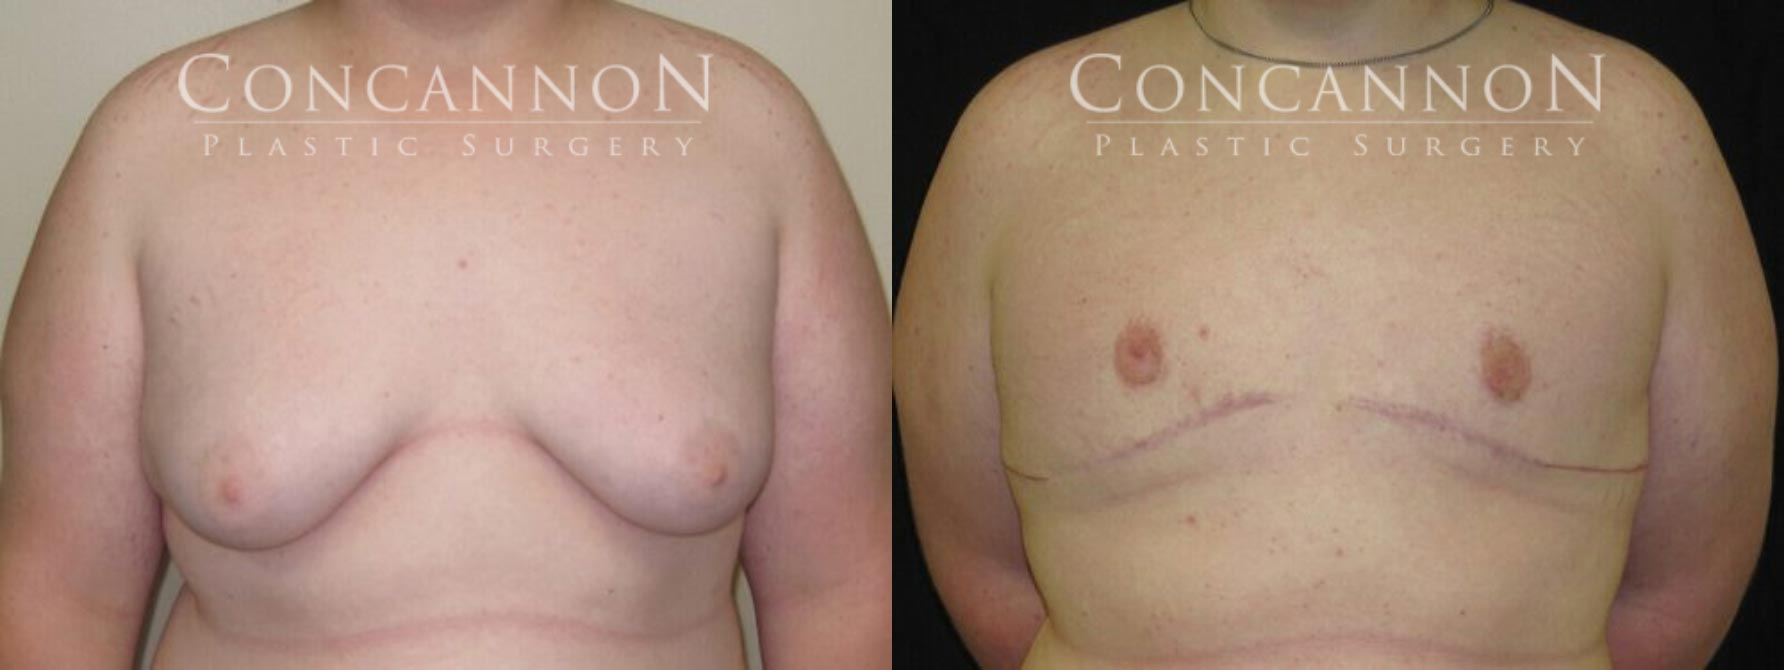 Before and After Photo - Gynecomastia Surgery